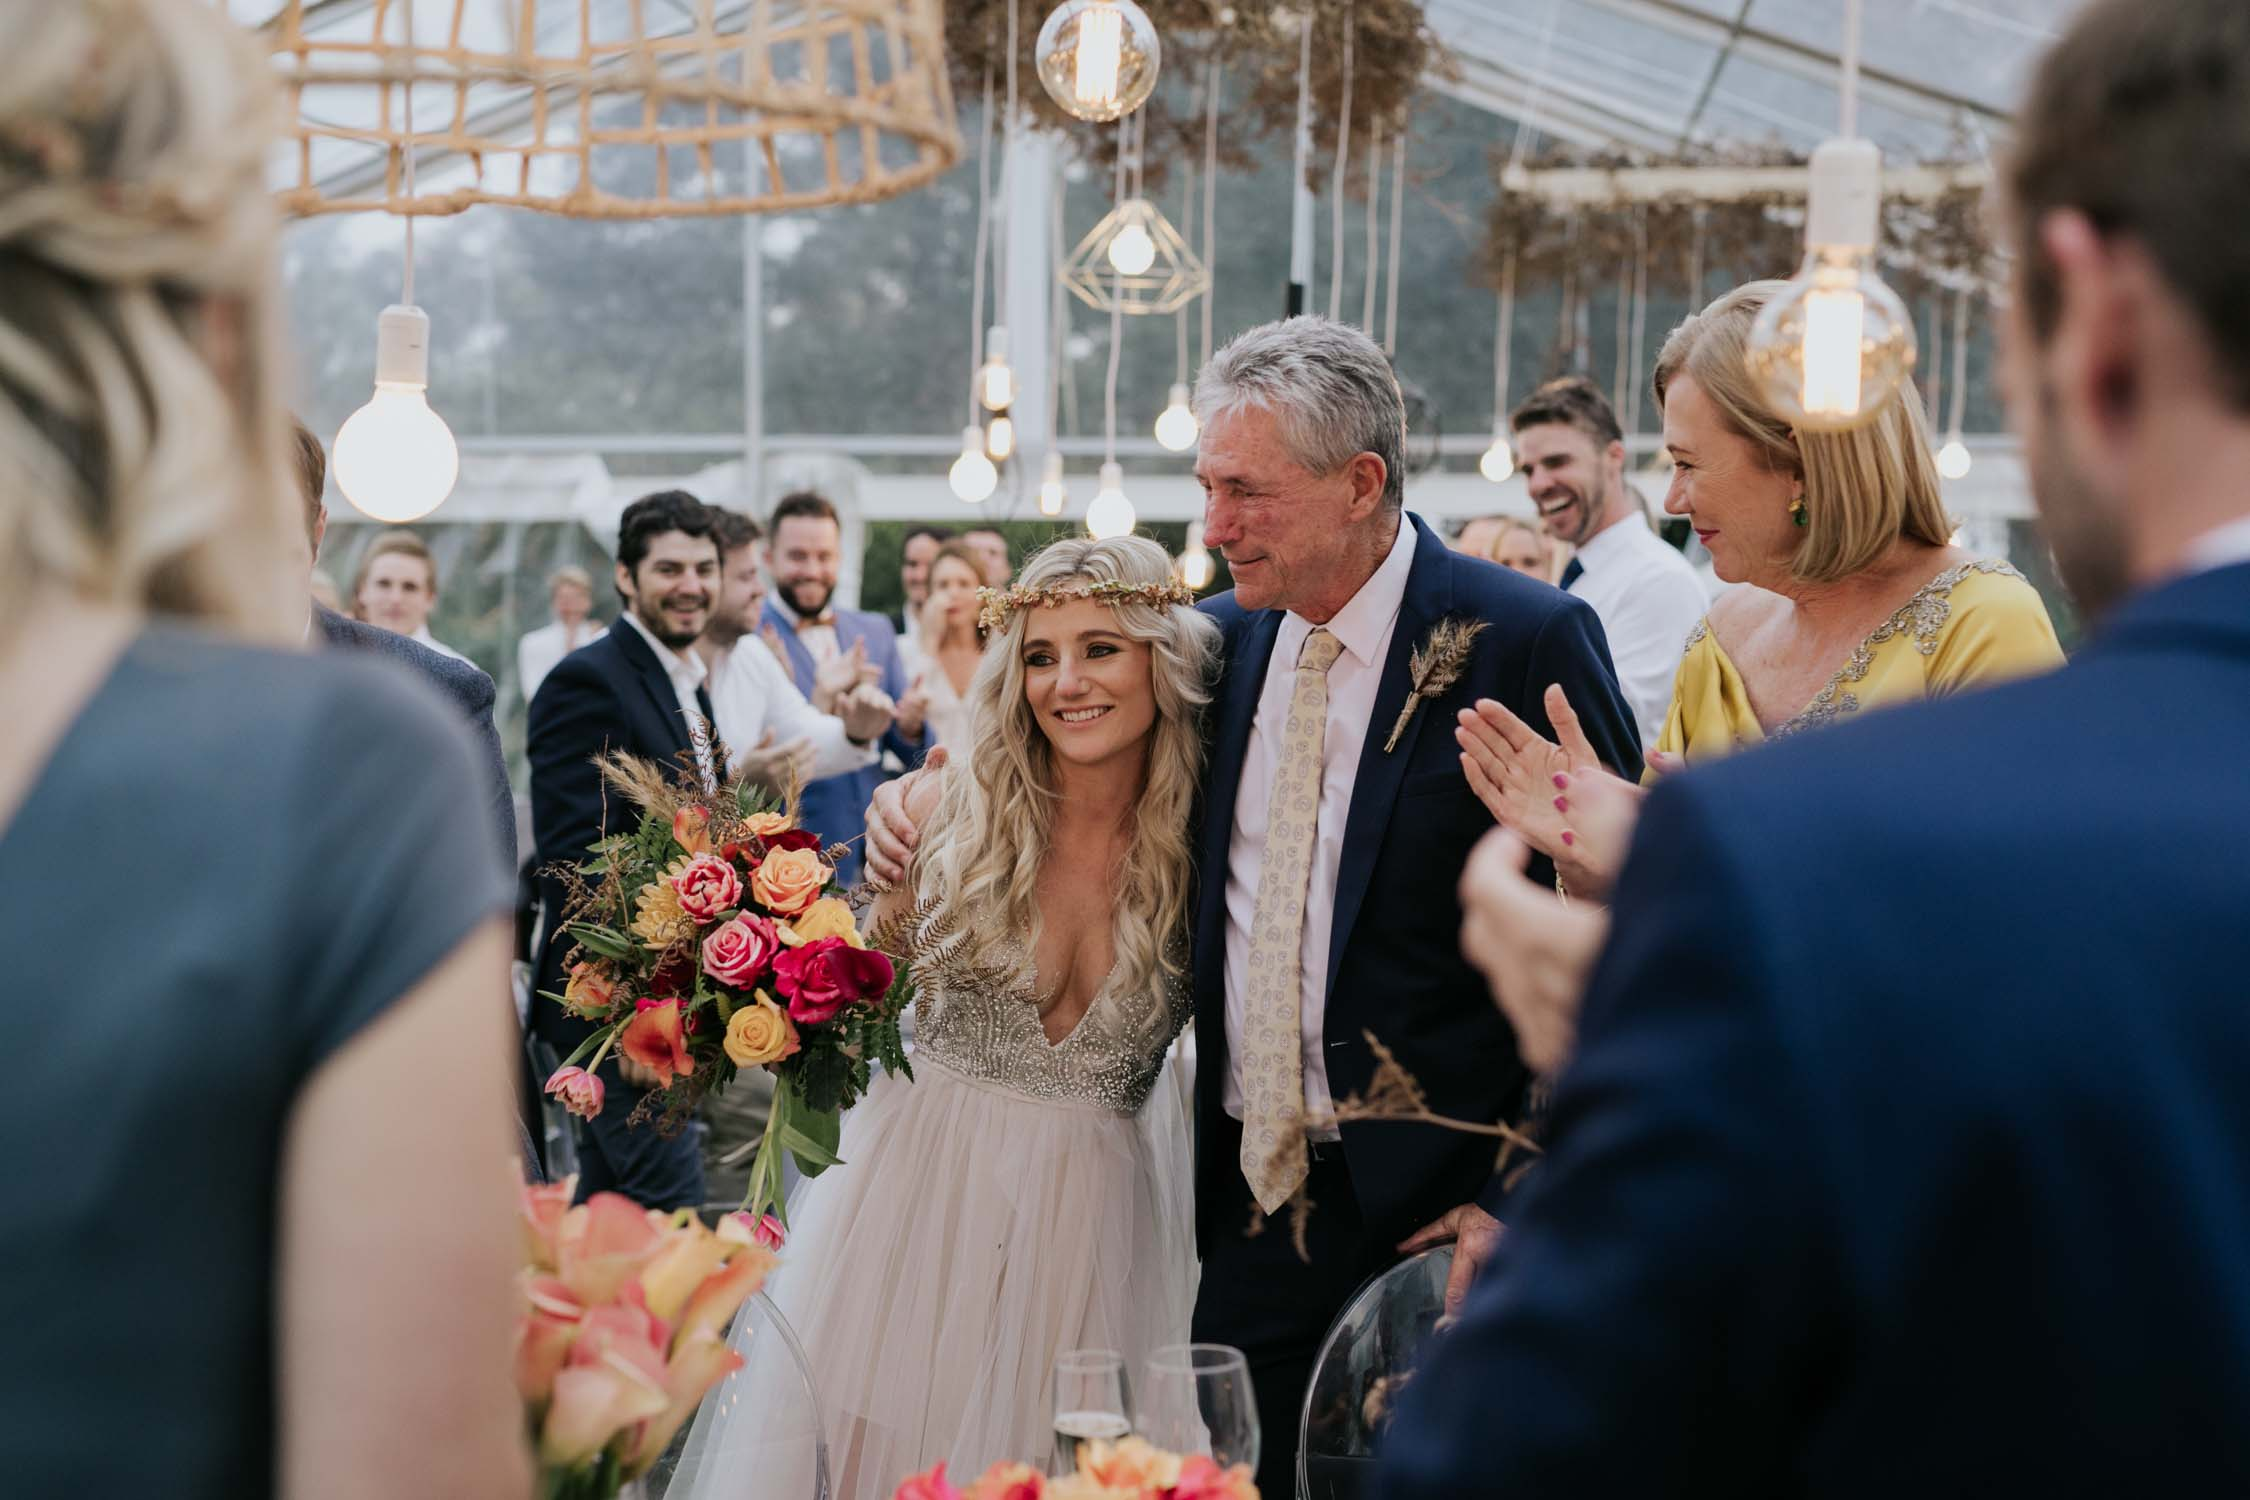 Father of the bride embracing his daughter during the wedding reception. Documentary photographic moment candid and natural.